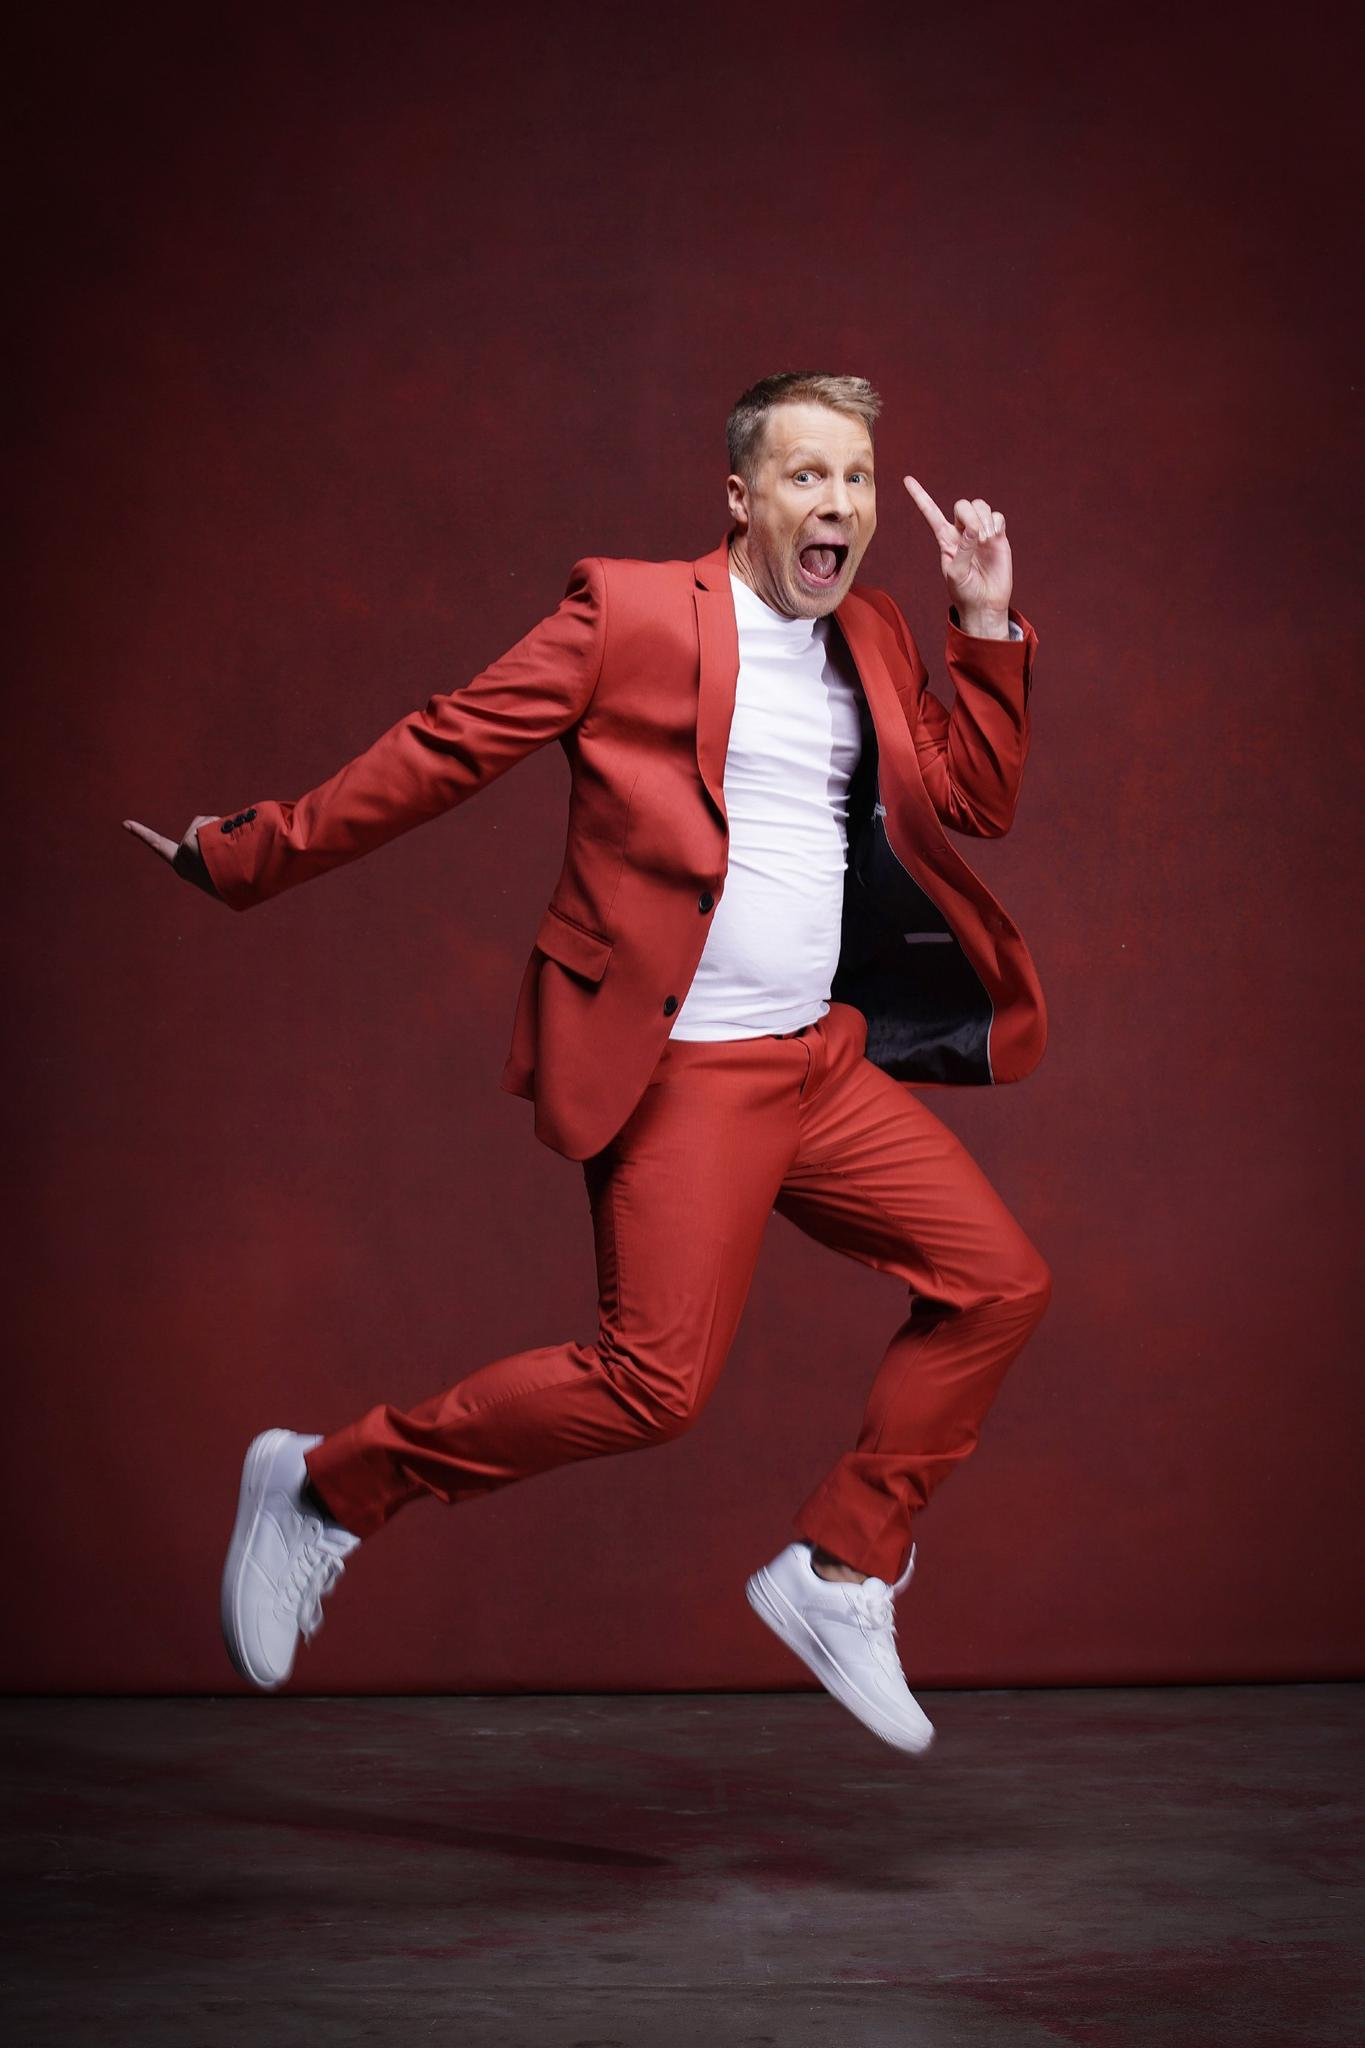 oliver pocher lets dance